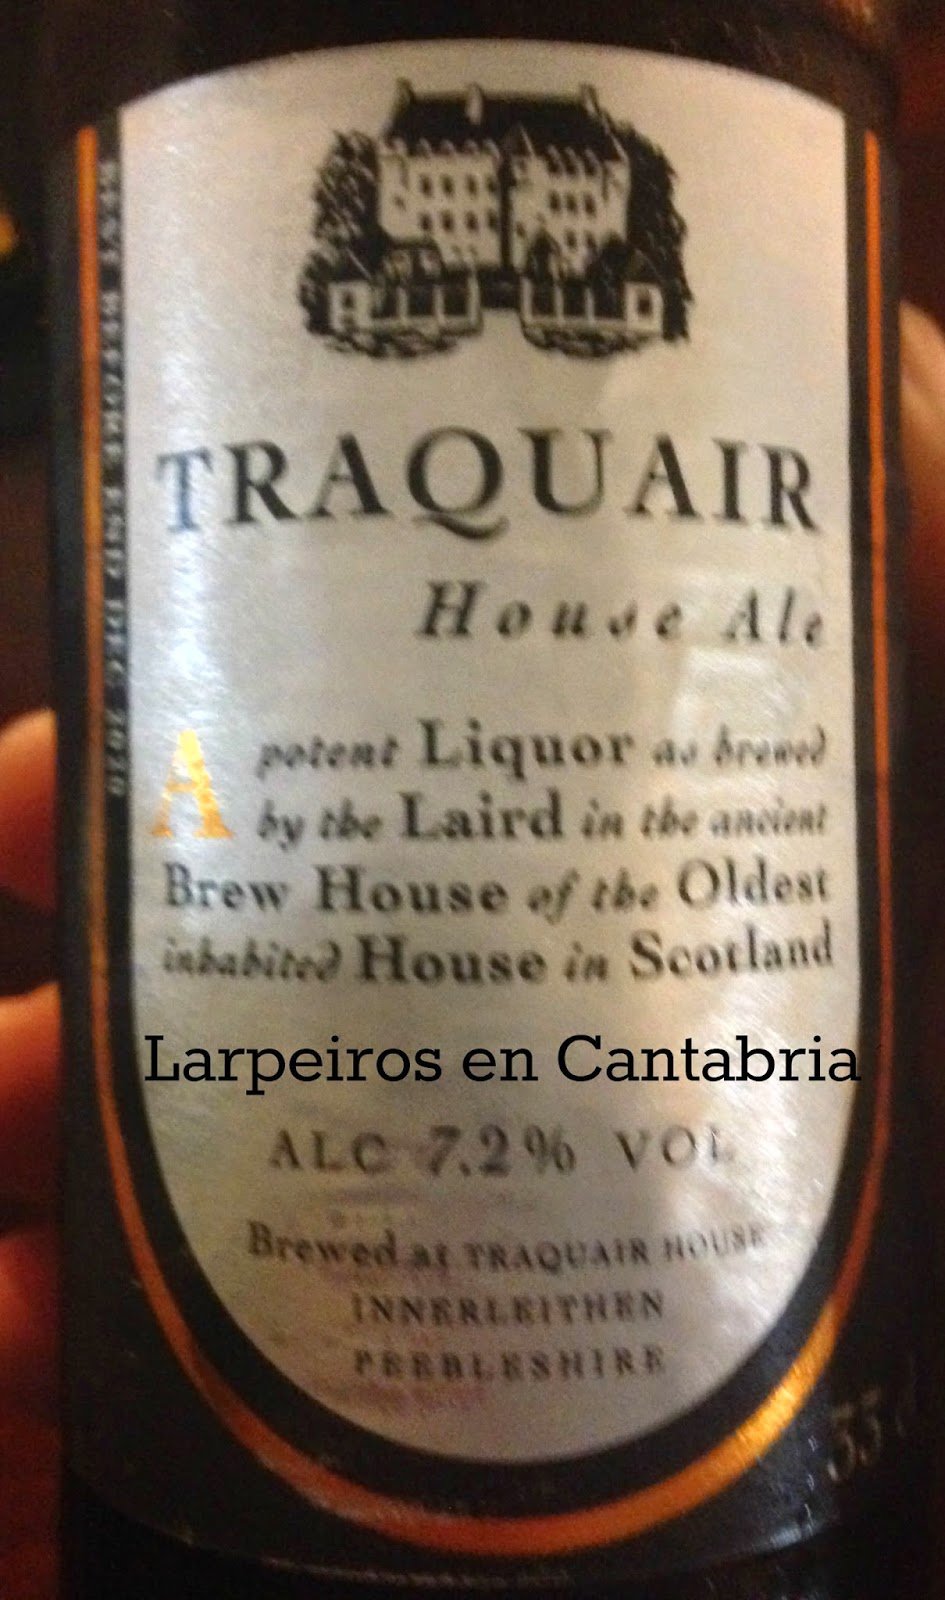 Cerveza Traquair House Ale: Interesante